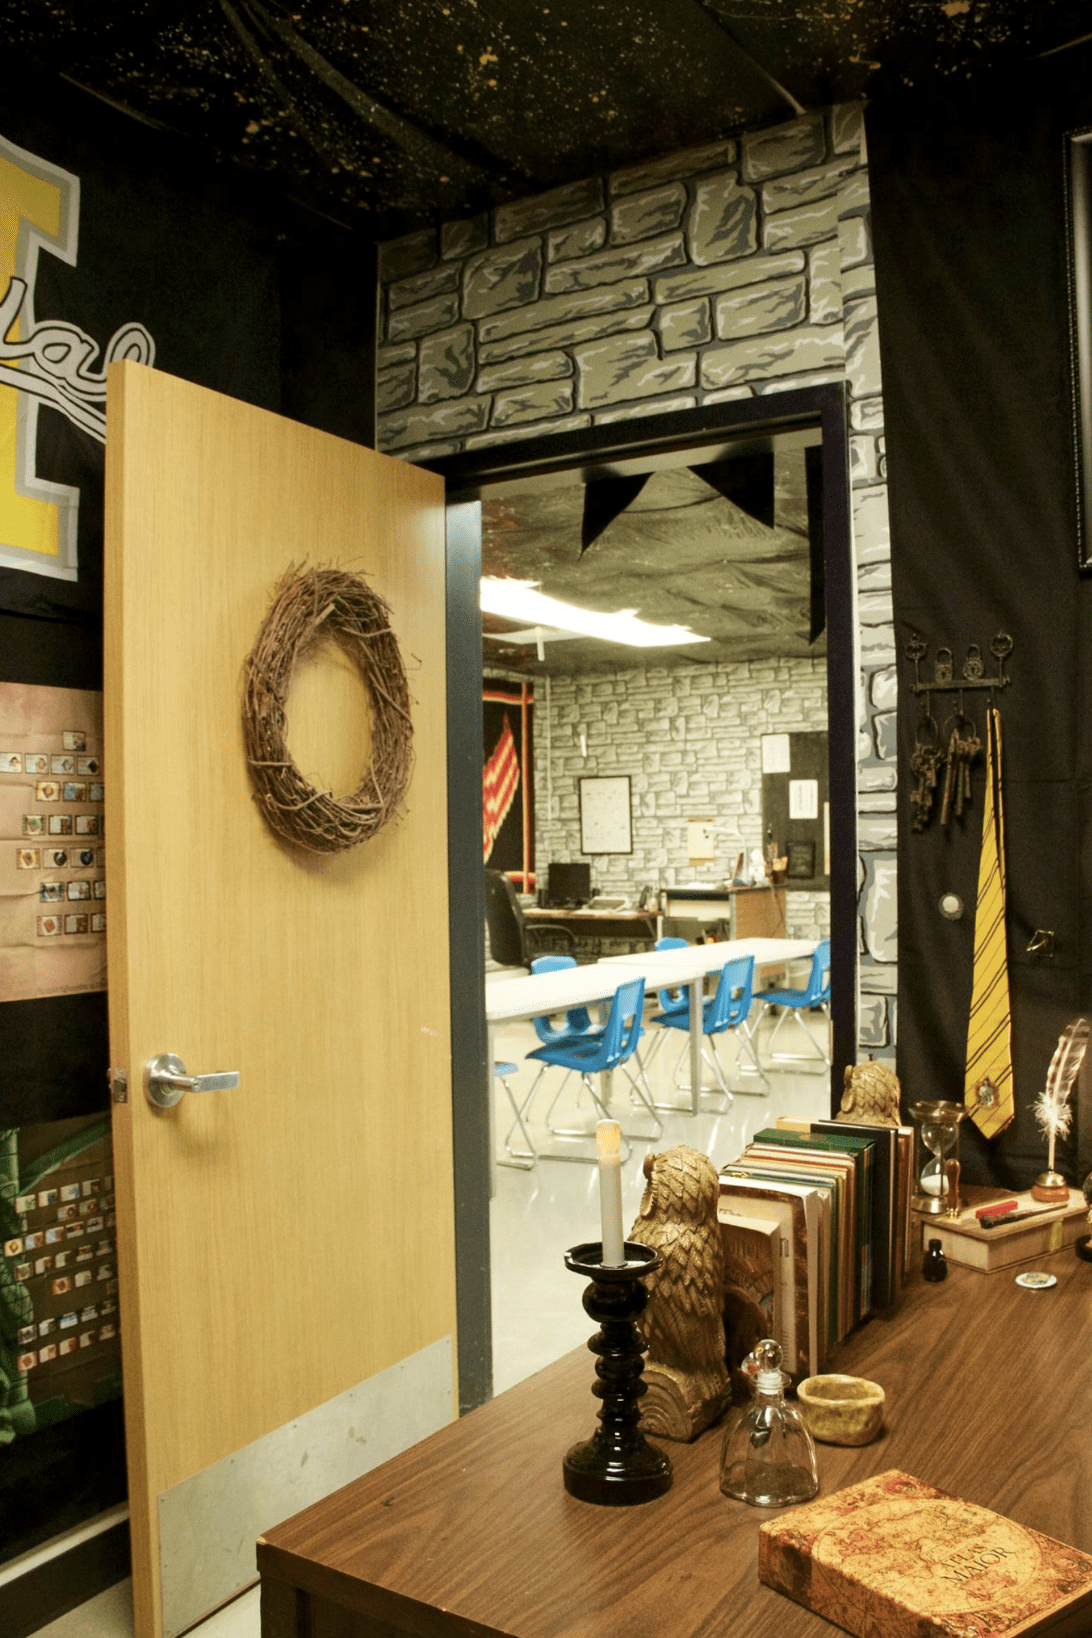 Images Of This Harry Potter Classroom Have Gone Viral And